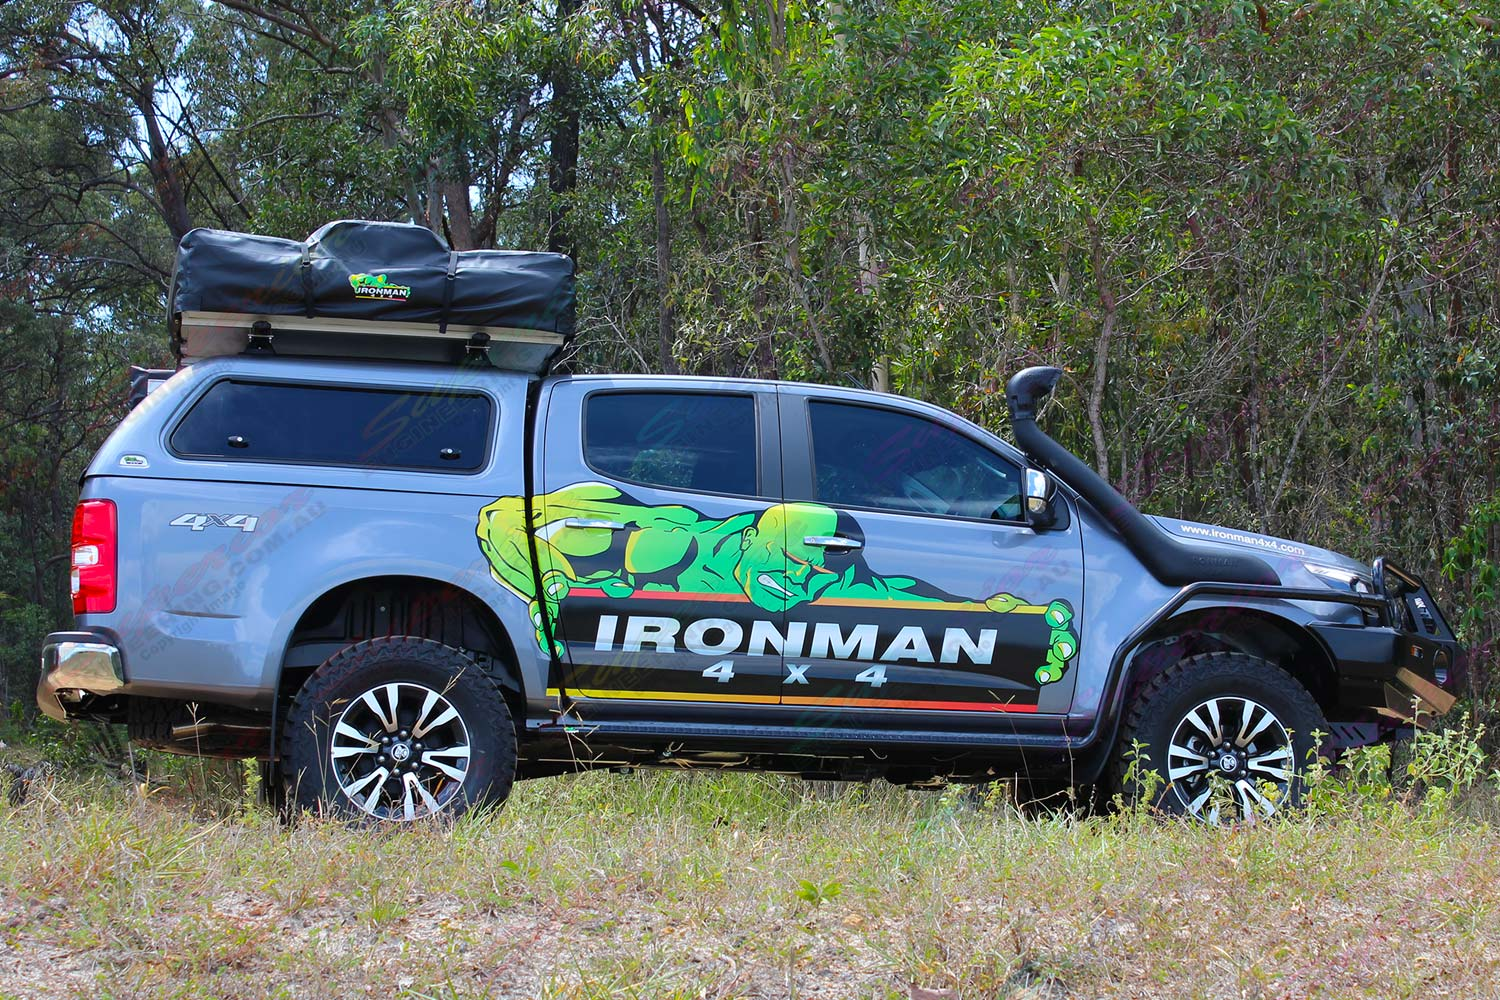 Right side view of a RG Holden Colorado dual cab fitted out with a complete range of Ironman 4x4 accessories and camping gear